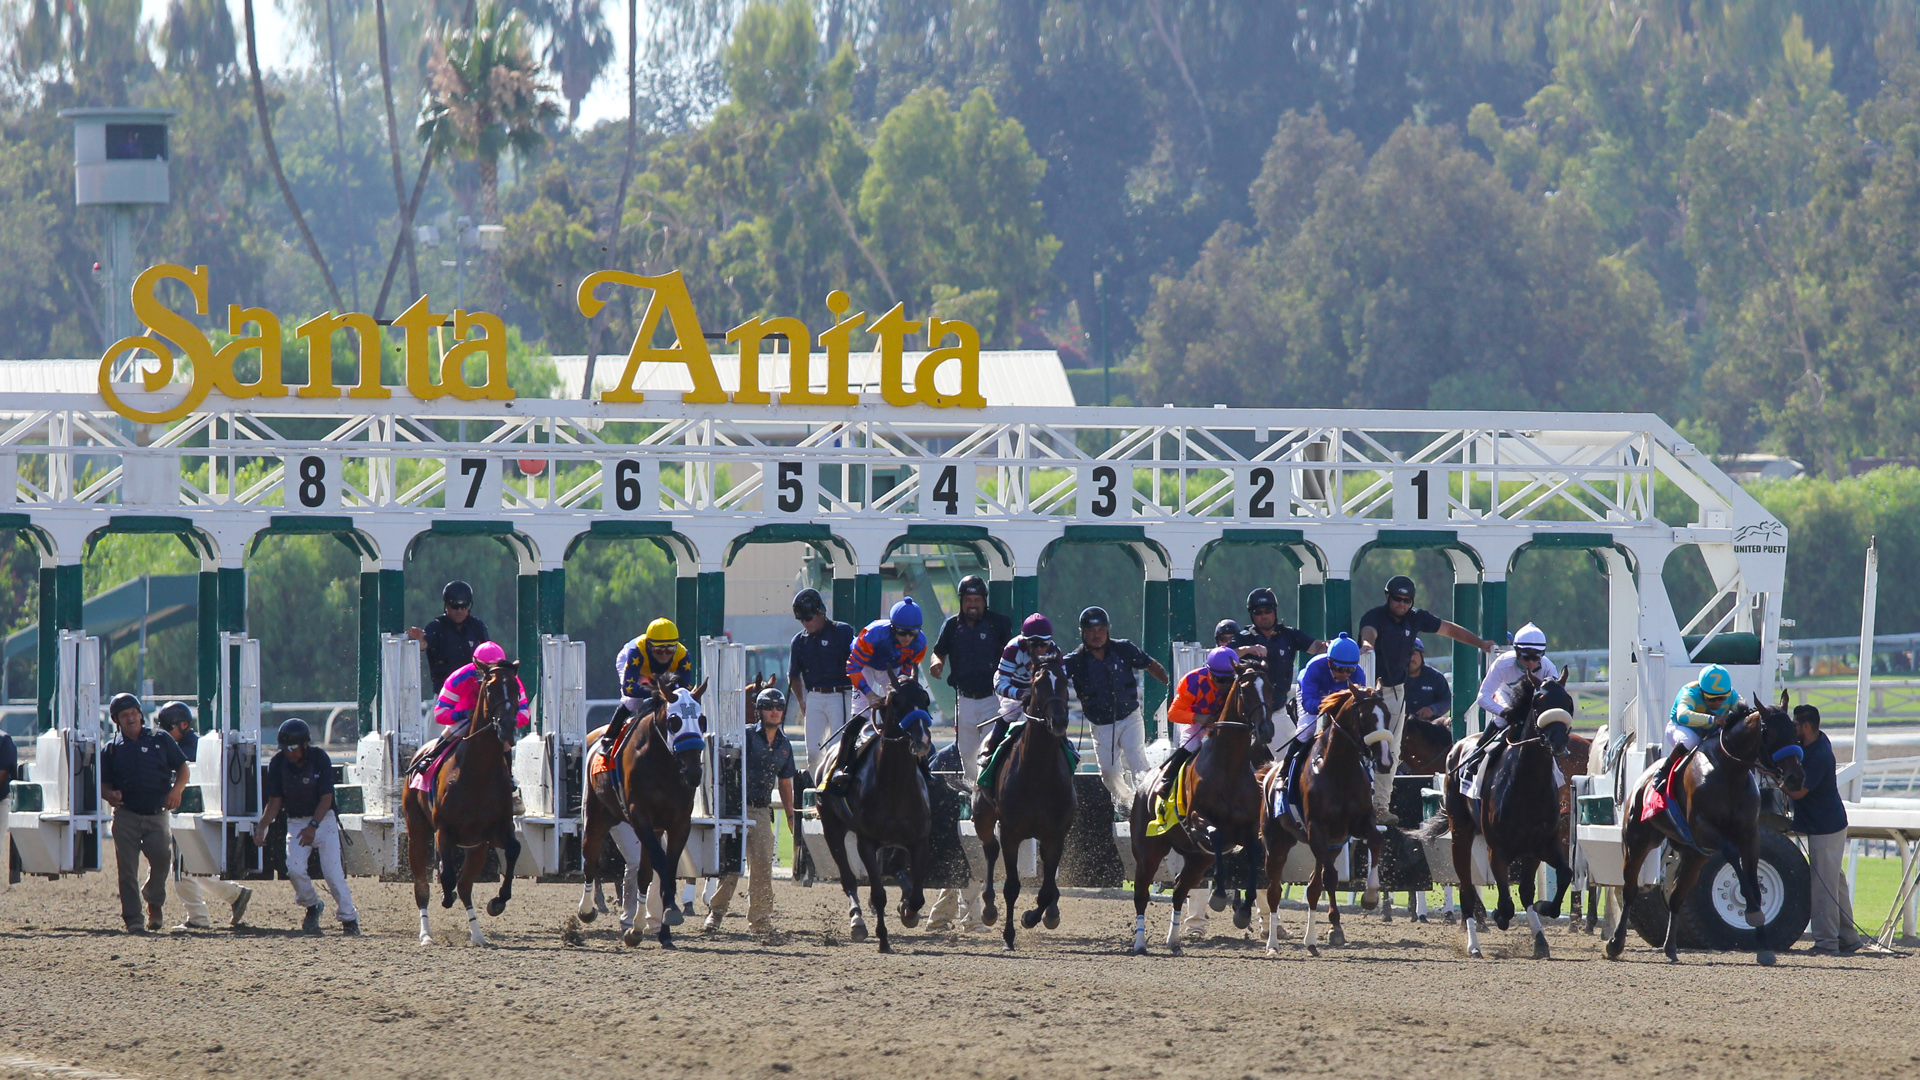 Jeff Siegel's Blog: Santa Anita Analysis for July 2, 2016